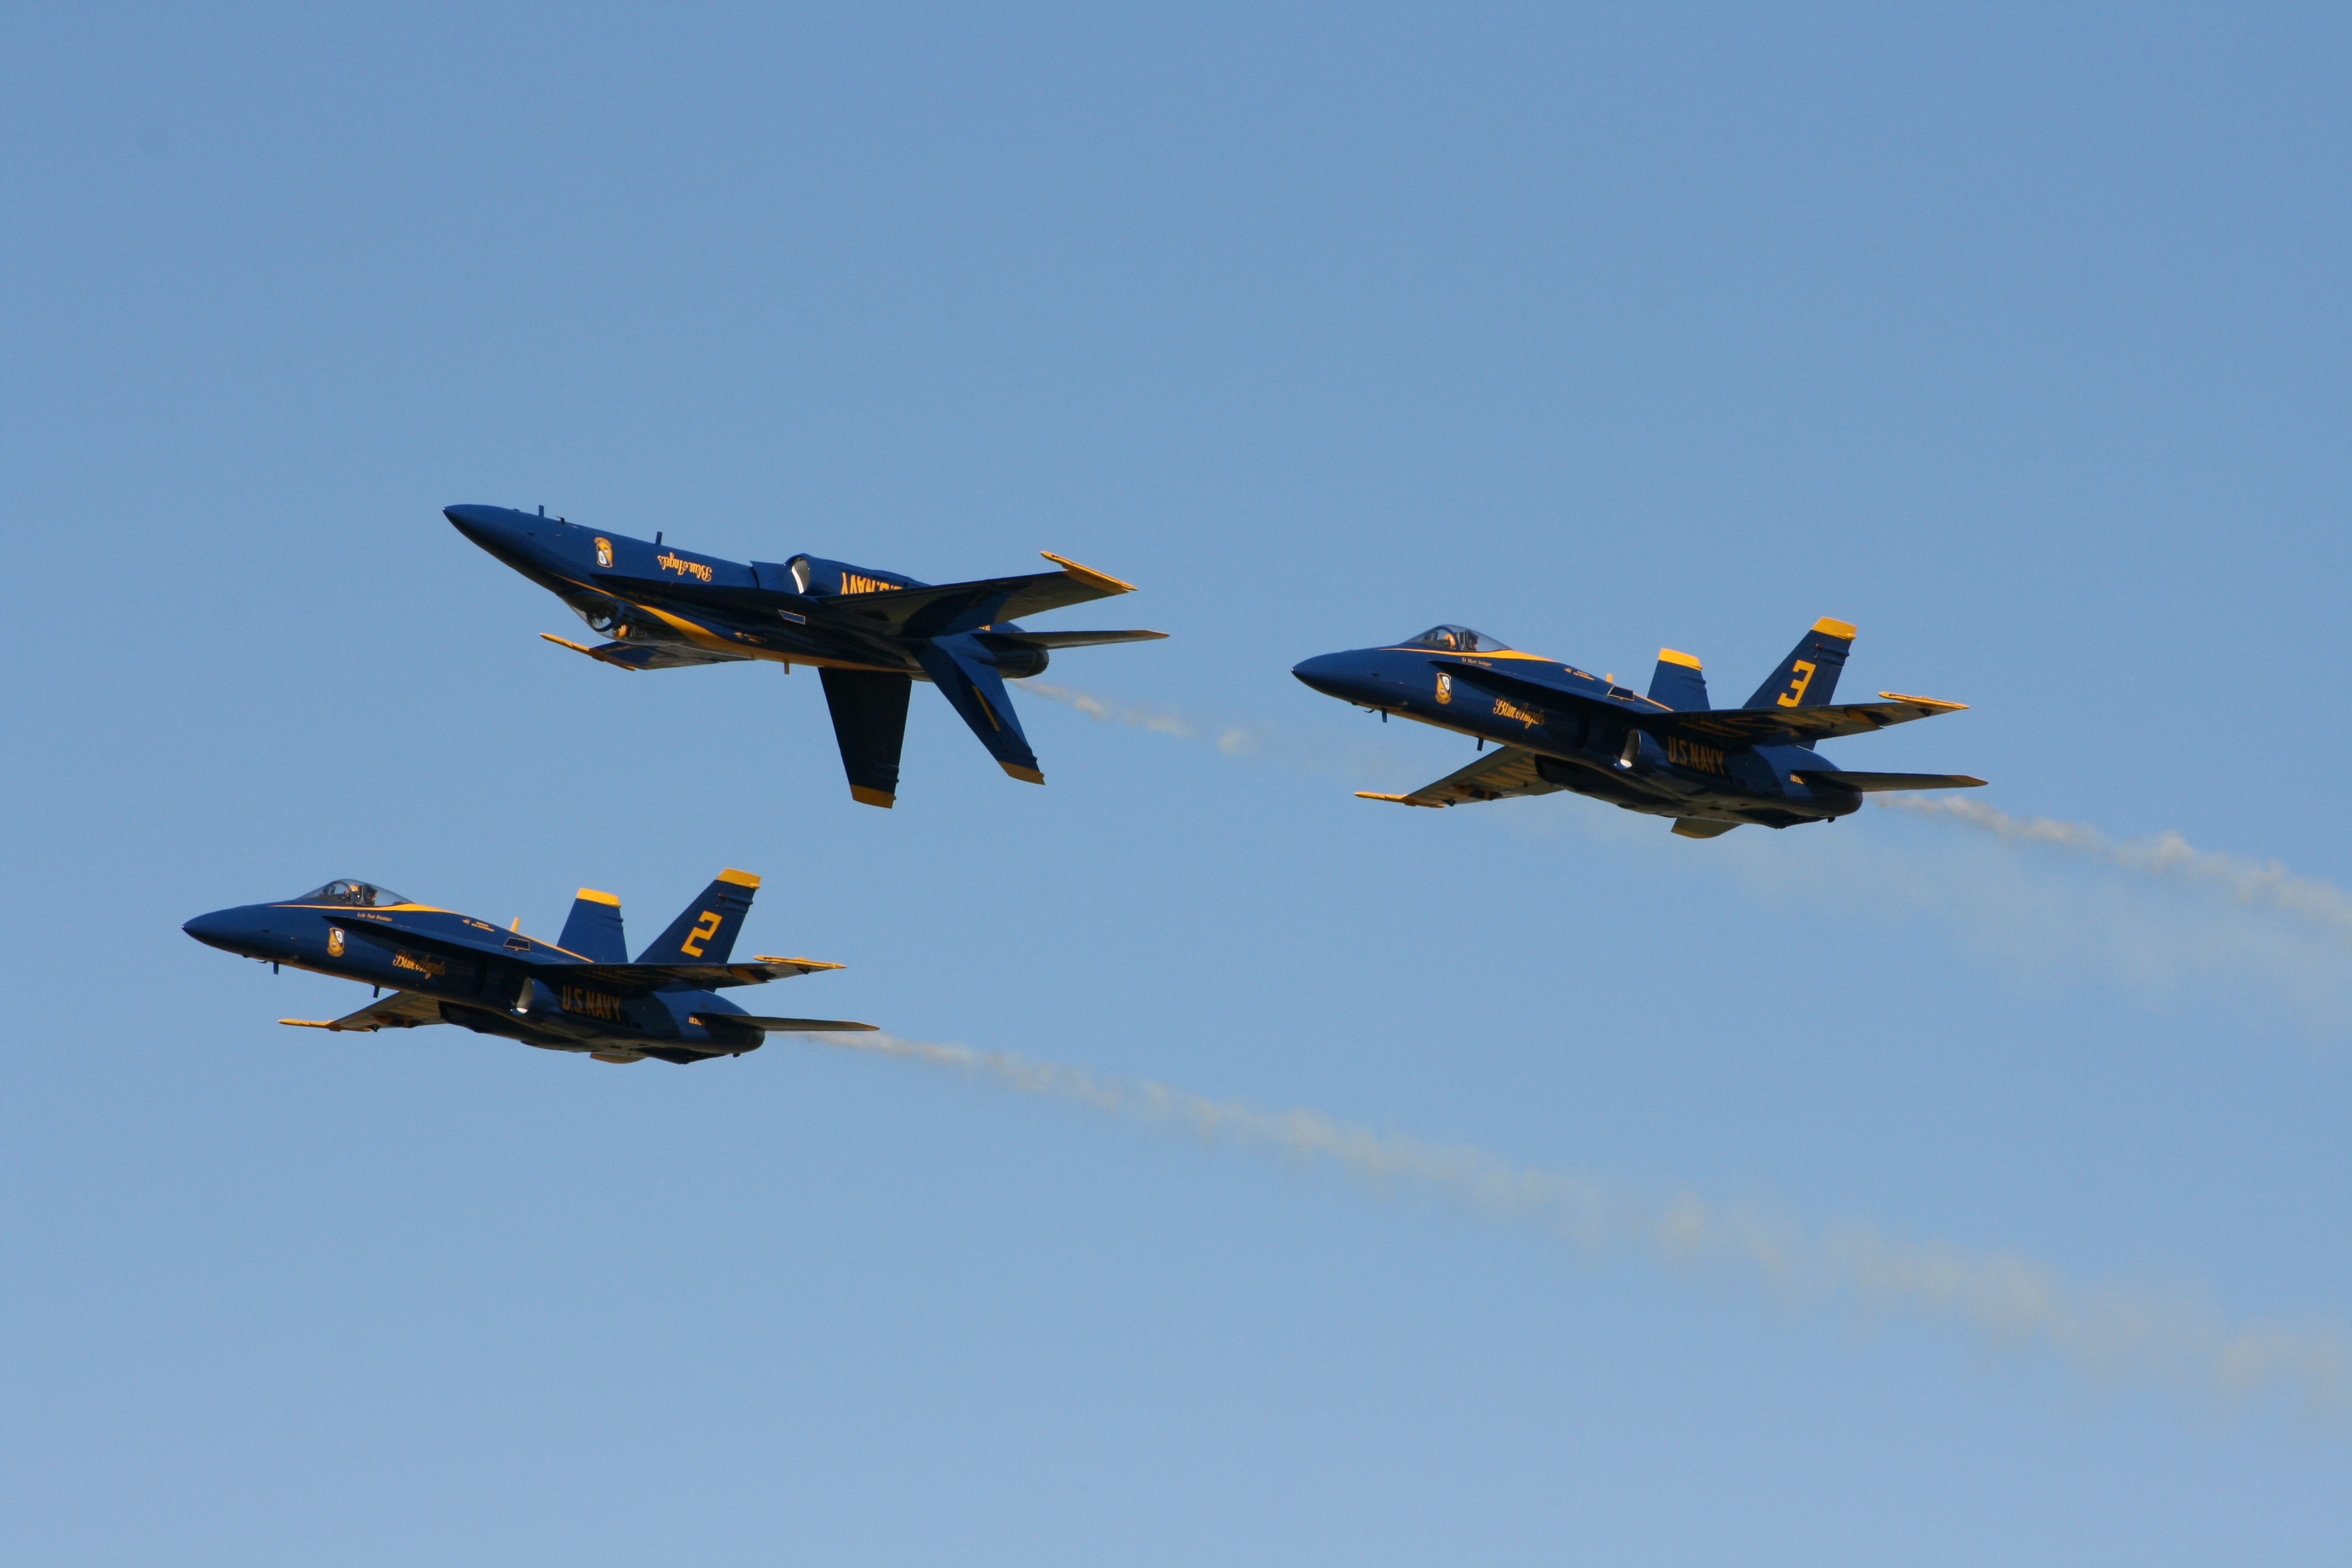 Aircraft vehicles Blue Angels